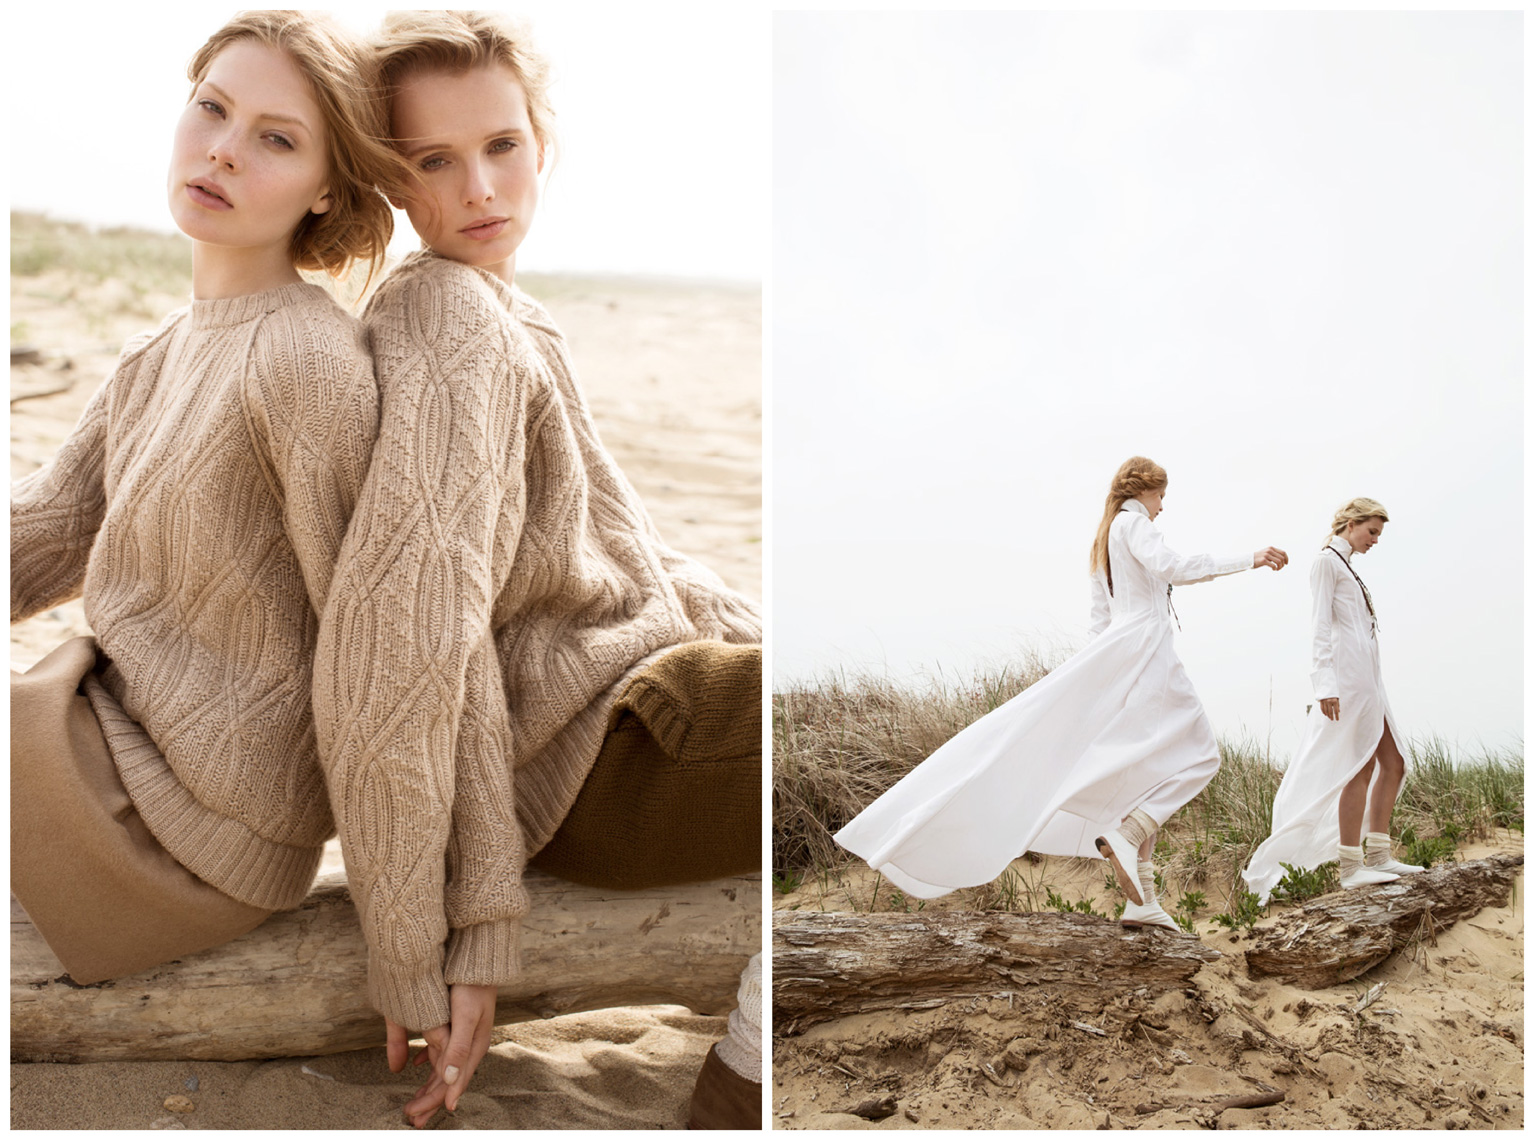 Fashion_May_17_Diptych